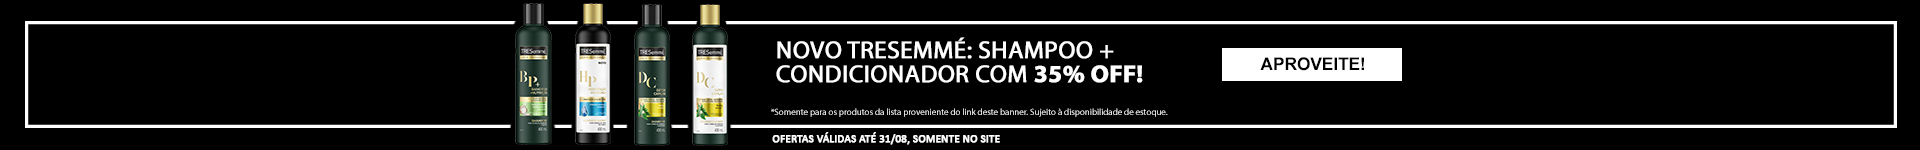 Tresemme Sh+Cond 35% off